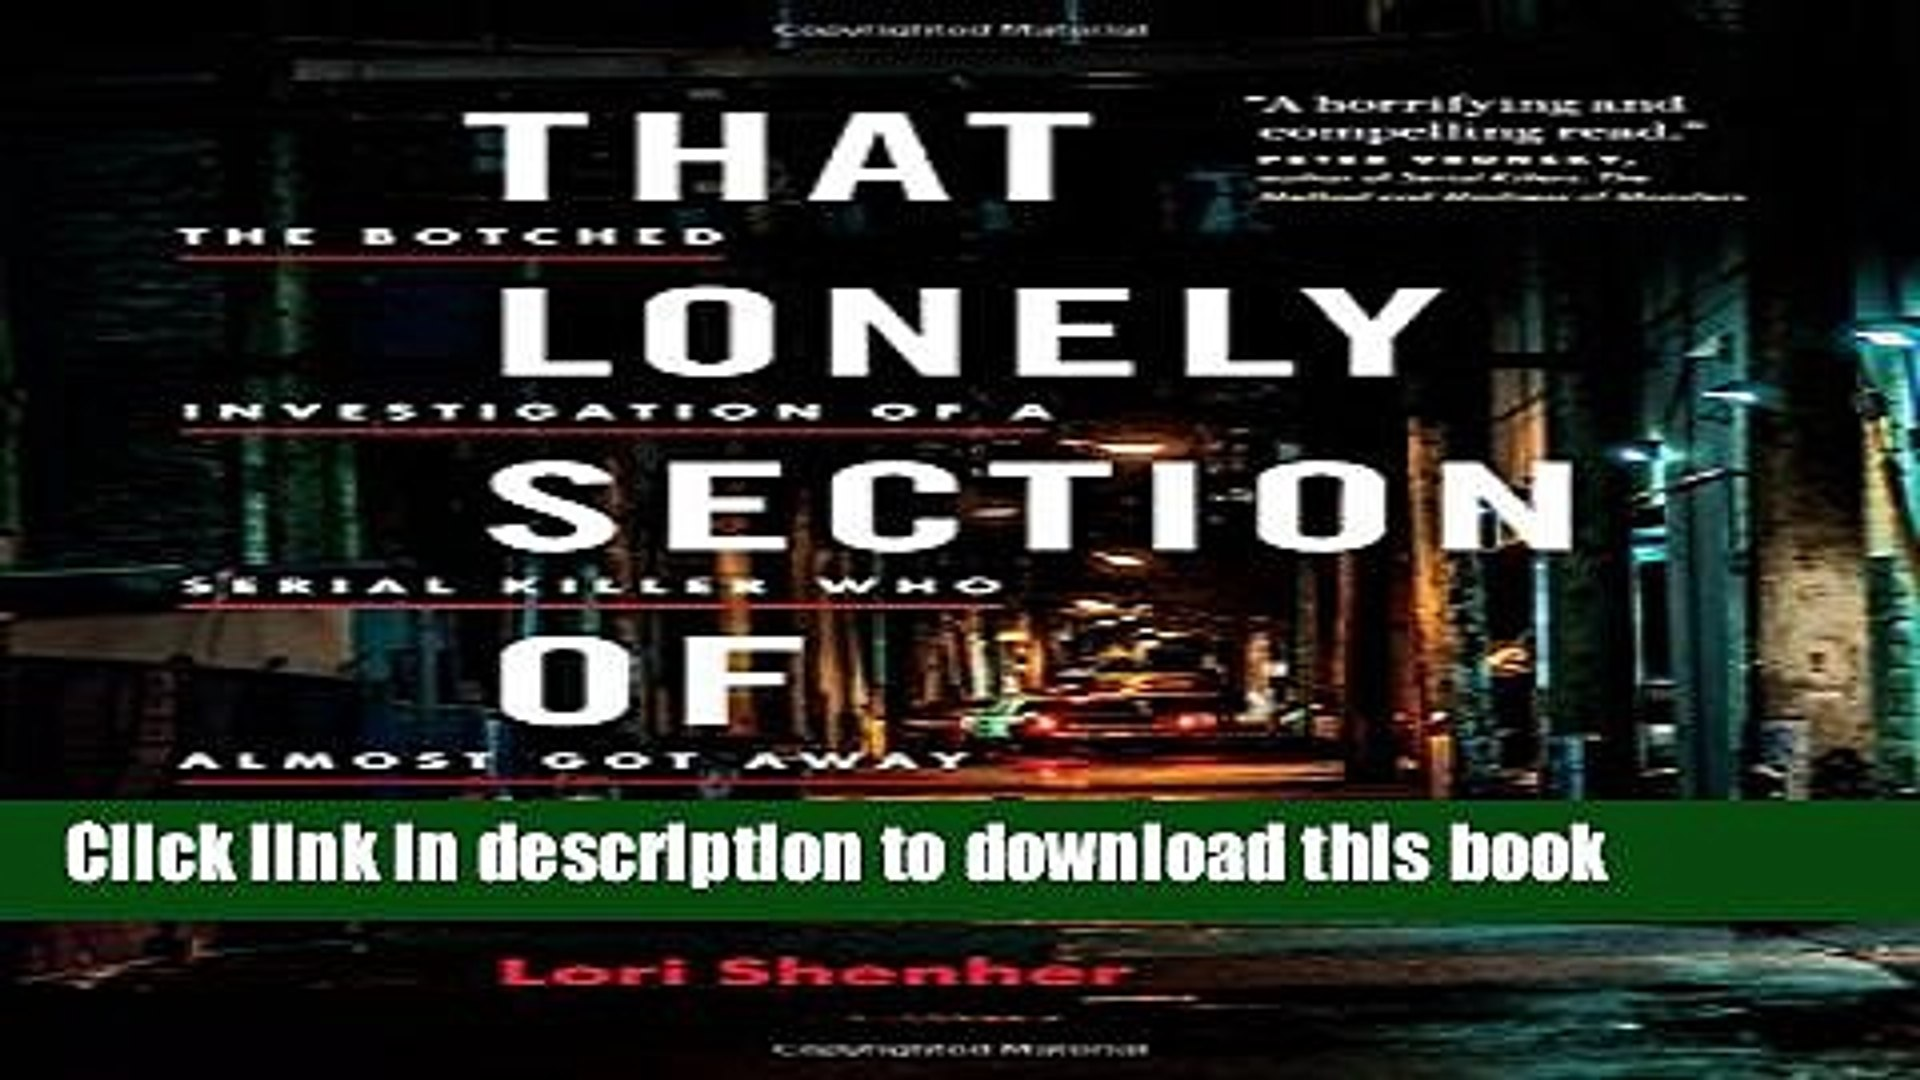 Download That Lonely Section of Hell: The Botched Investigation of a Serial Killer Who Almost Got